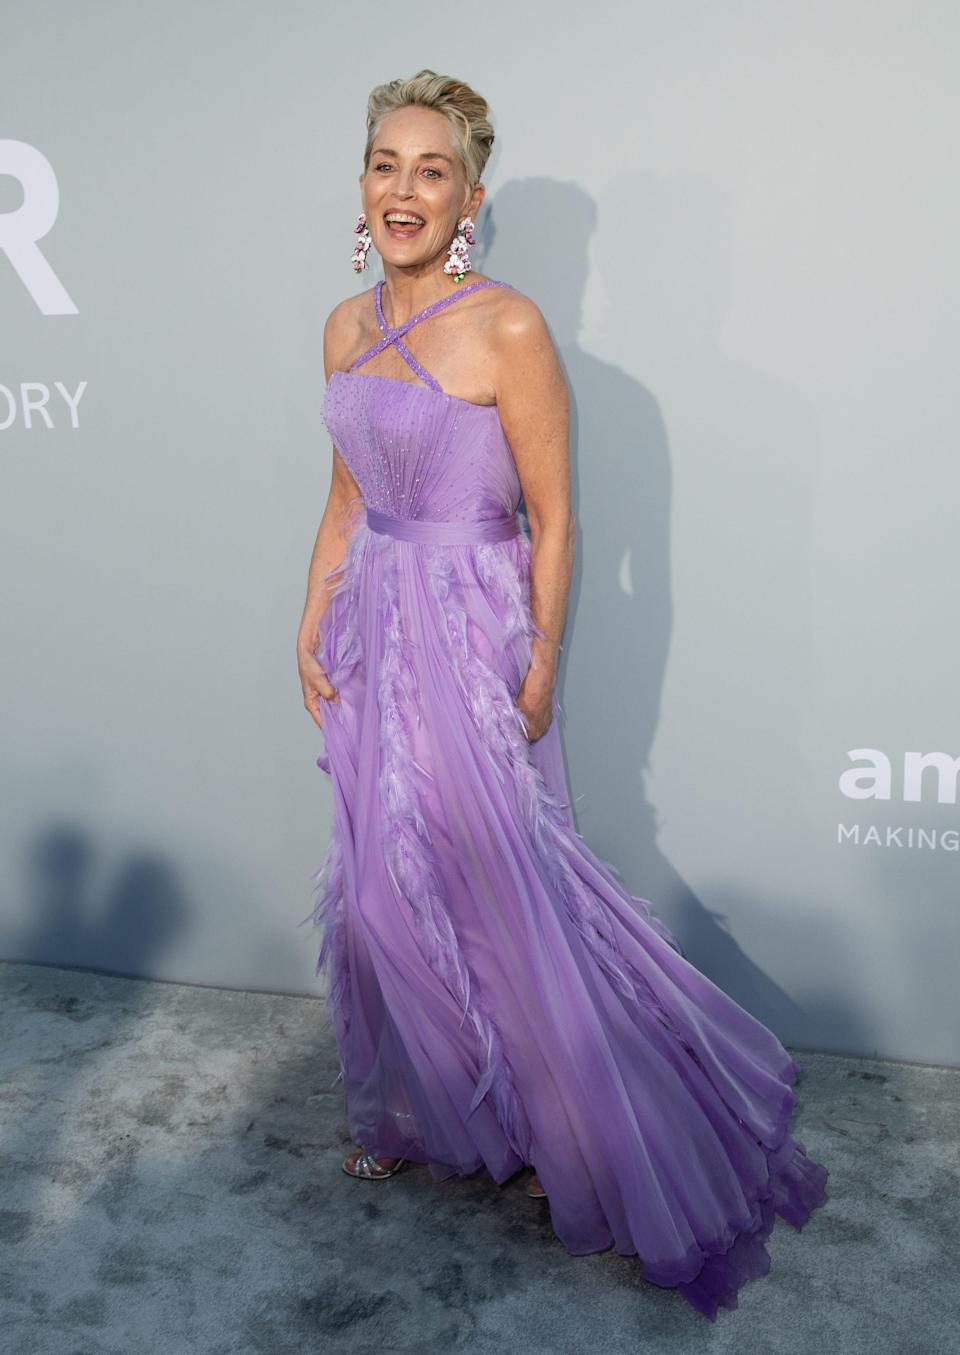 Sharon Stone at the Cannes Gala